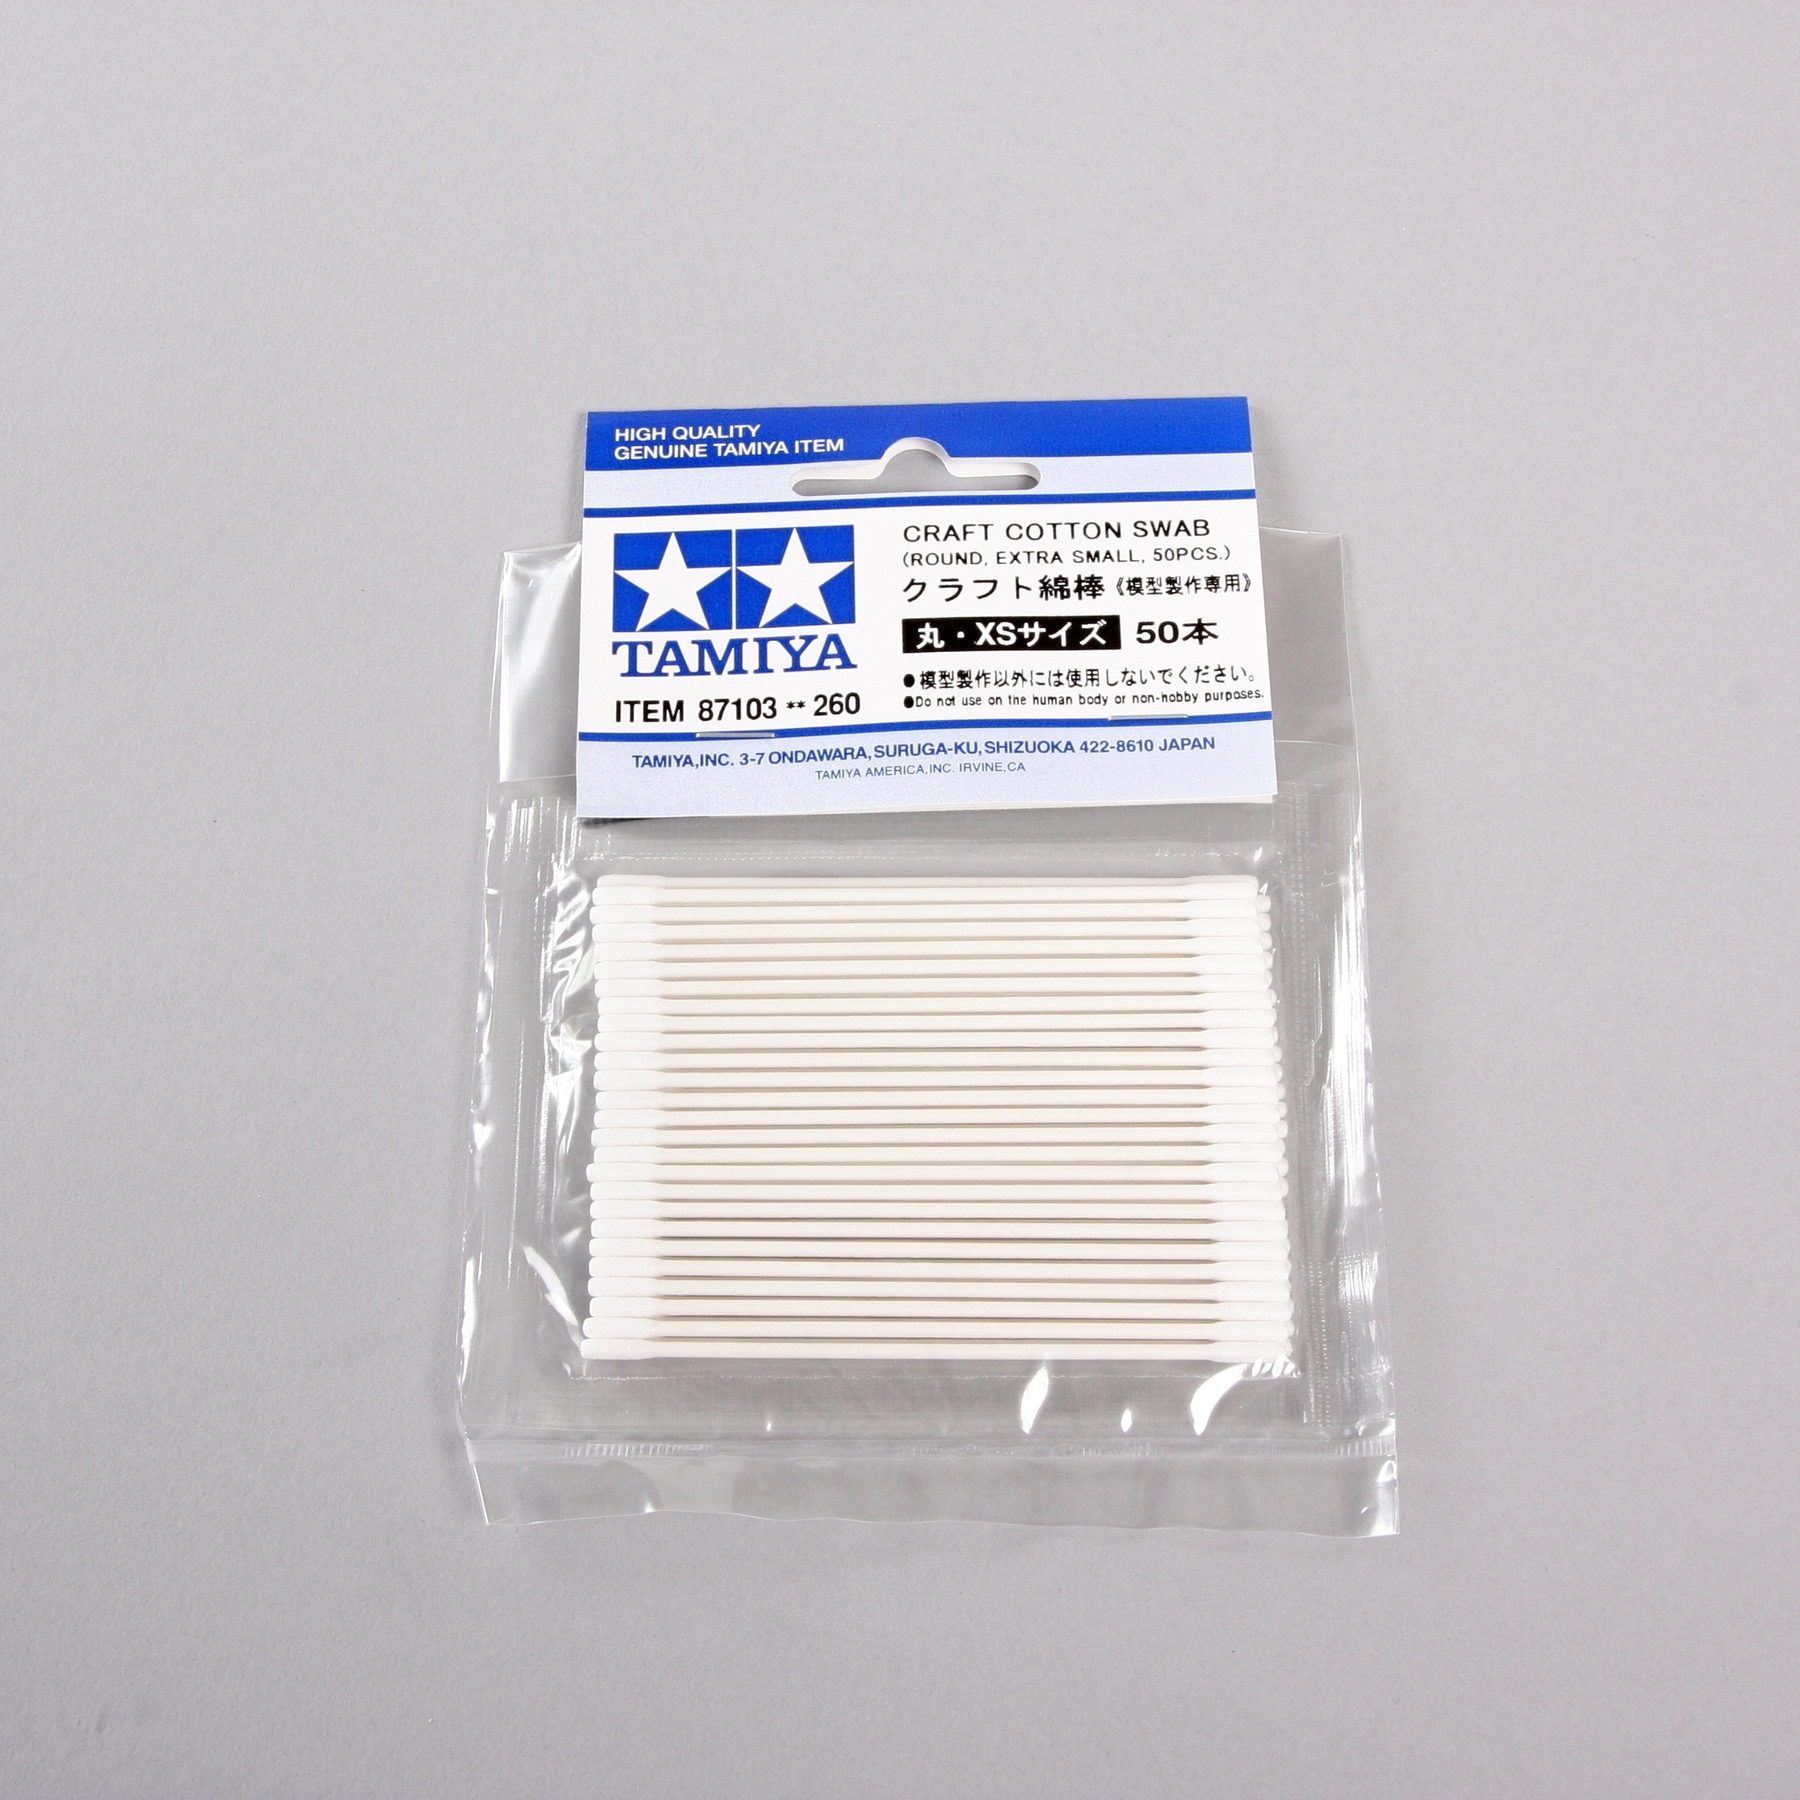 Craft Cotton Swab